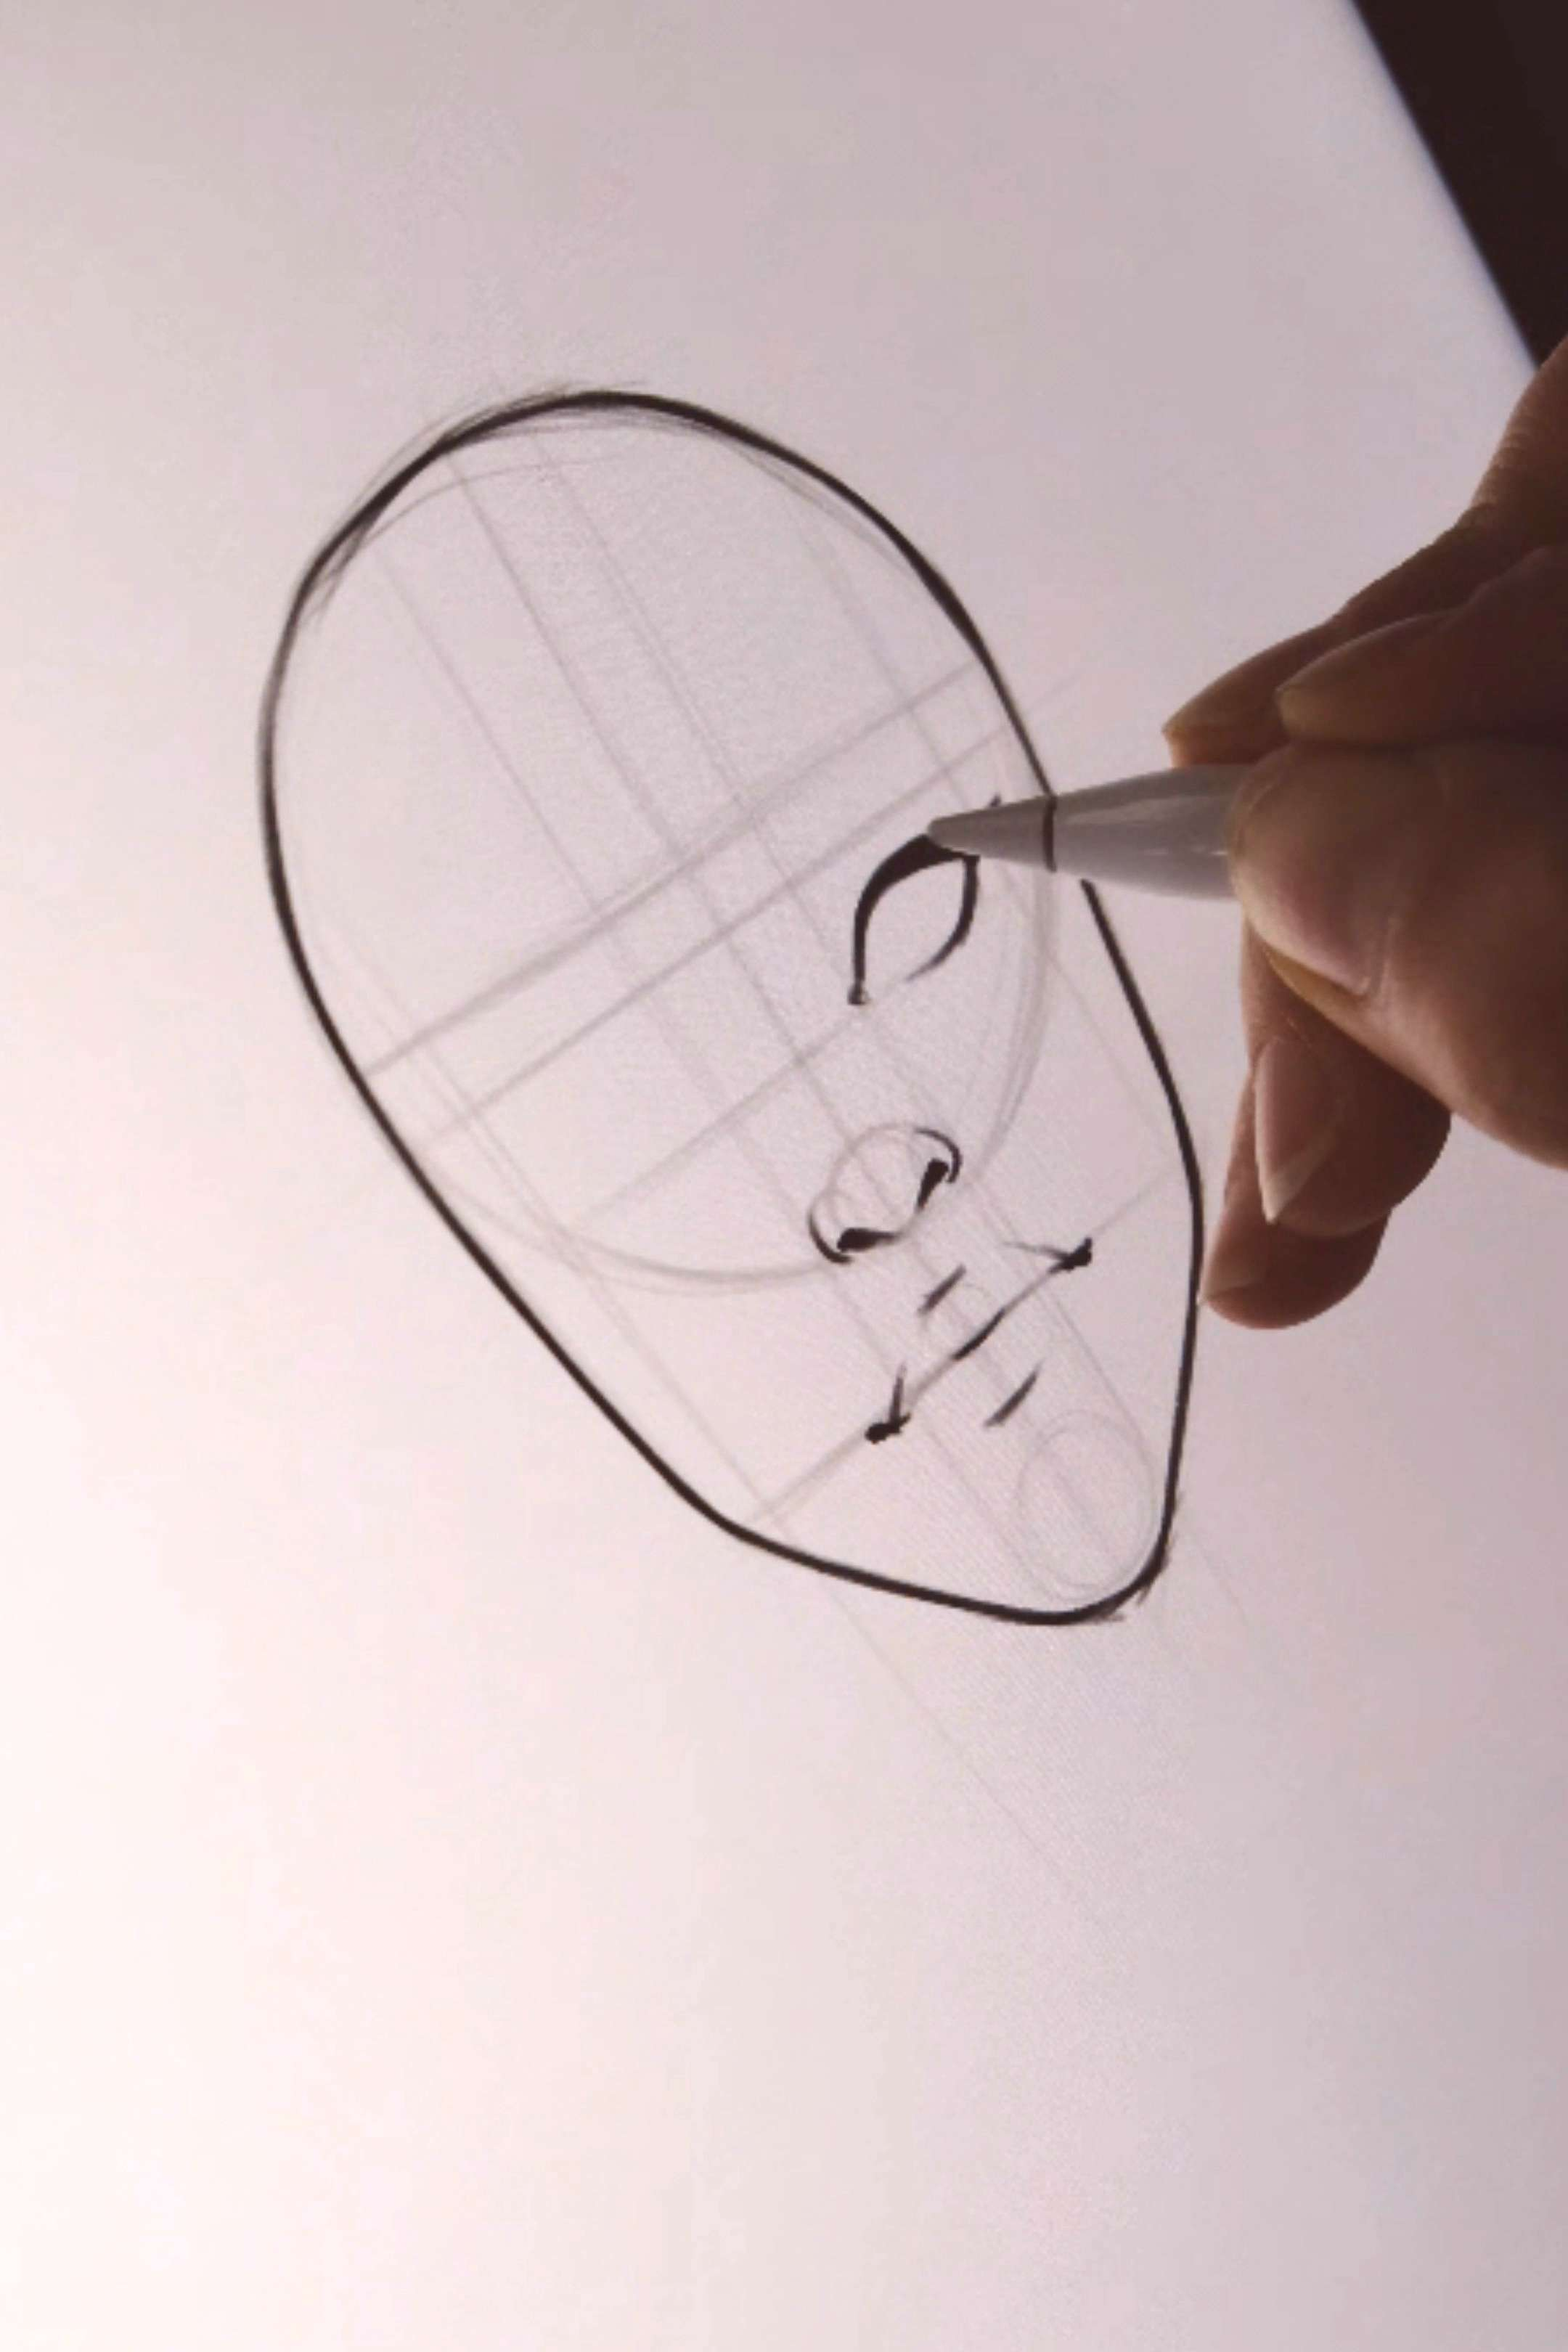 Easy face drawing tutorial with construction lines by AlicjaNai